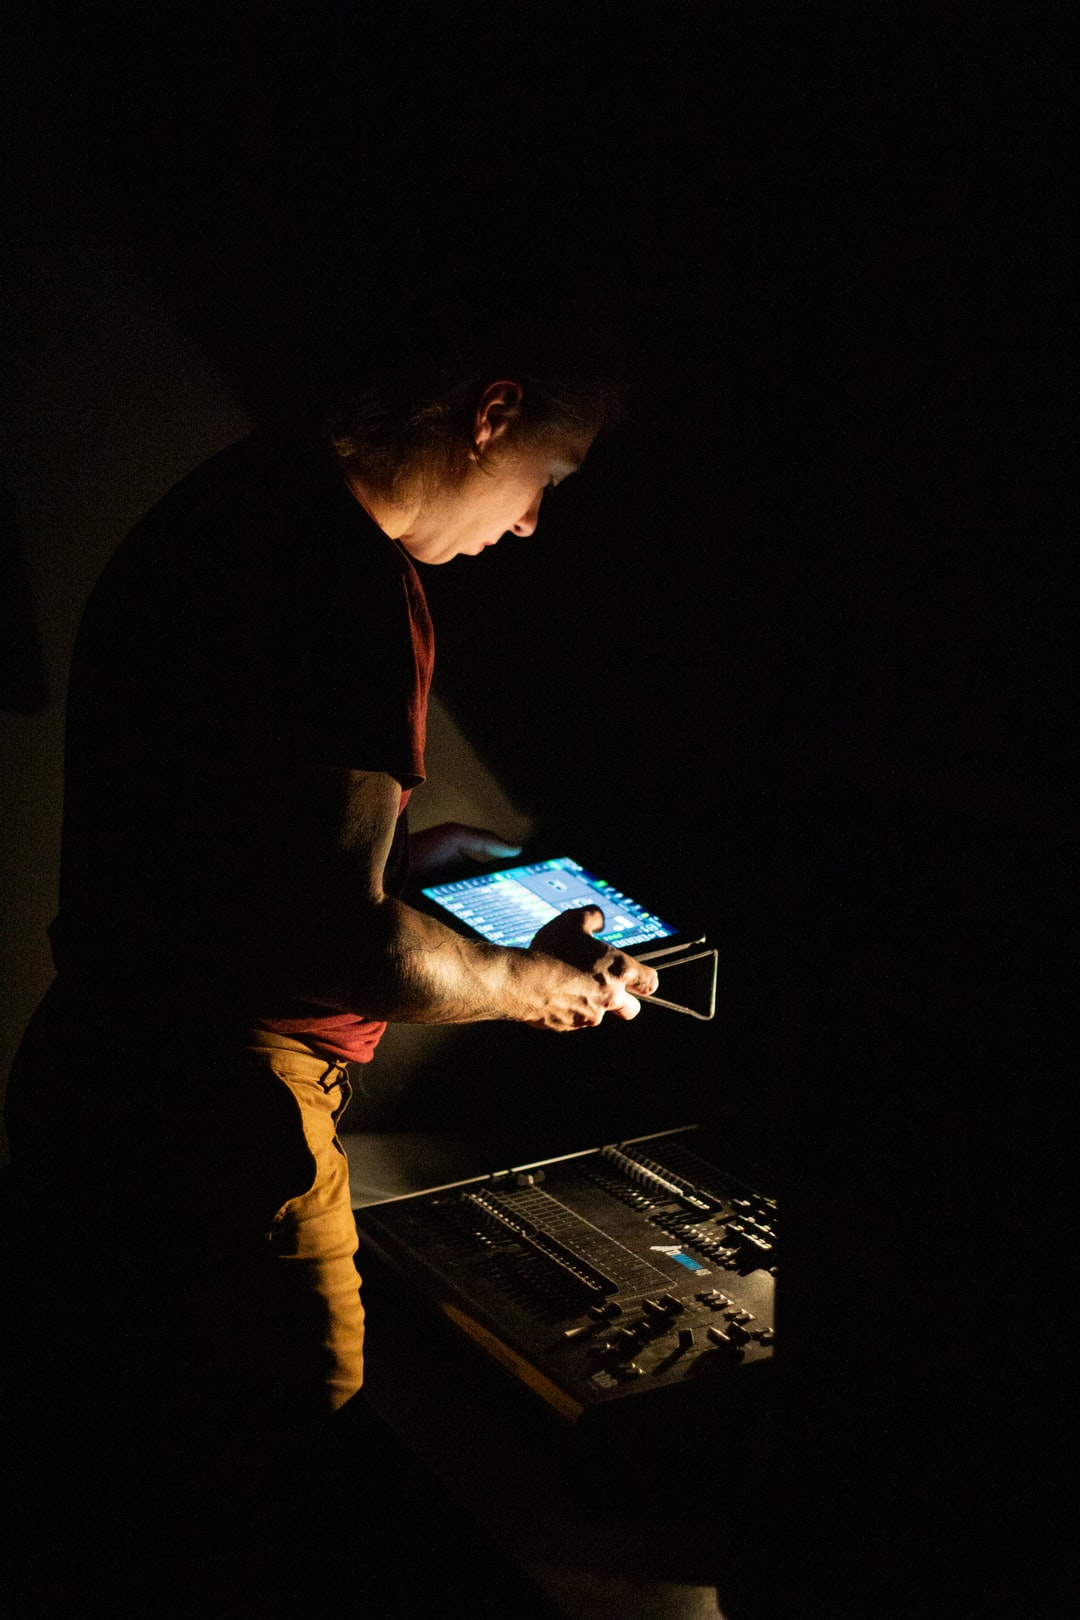 Man behind the settings table of a concert.